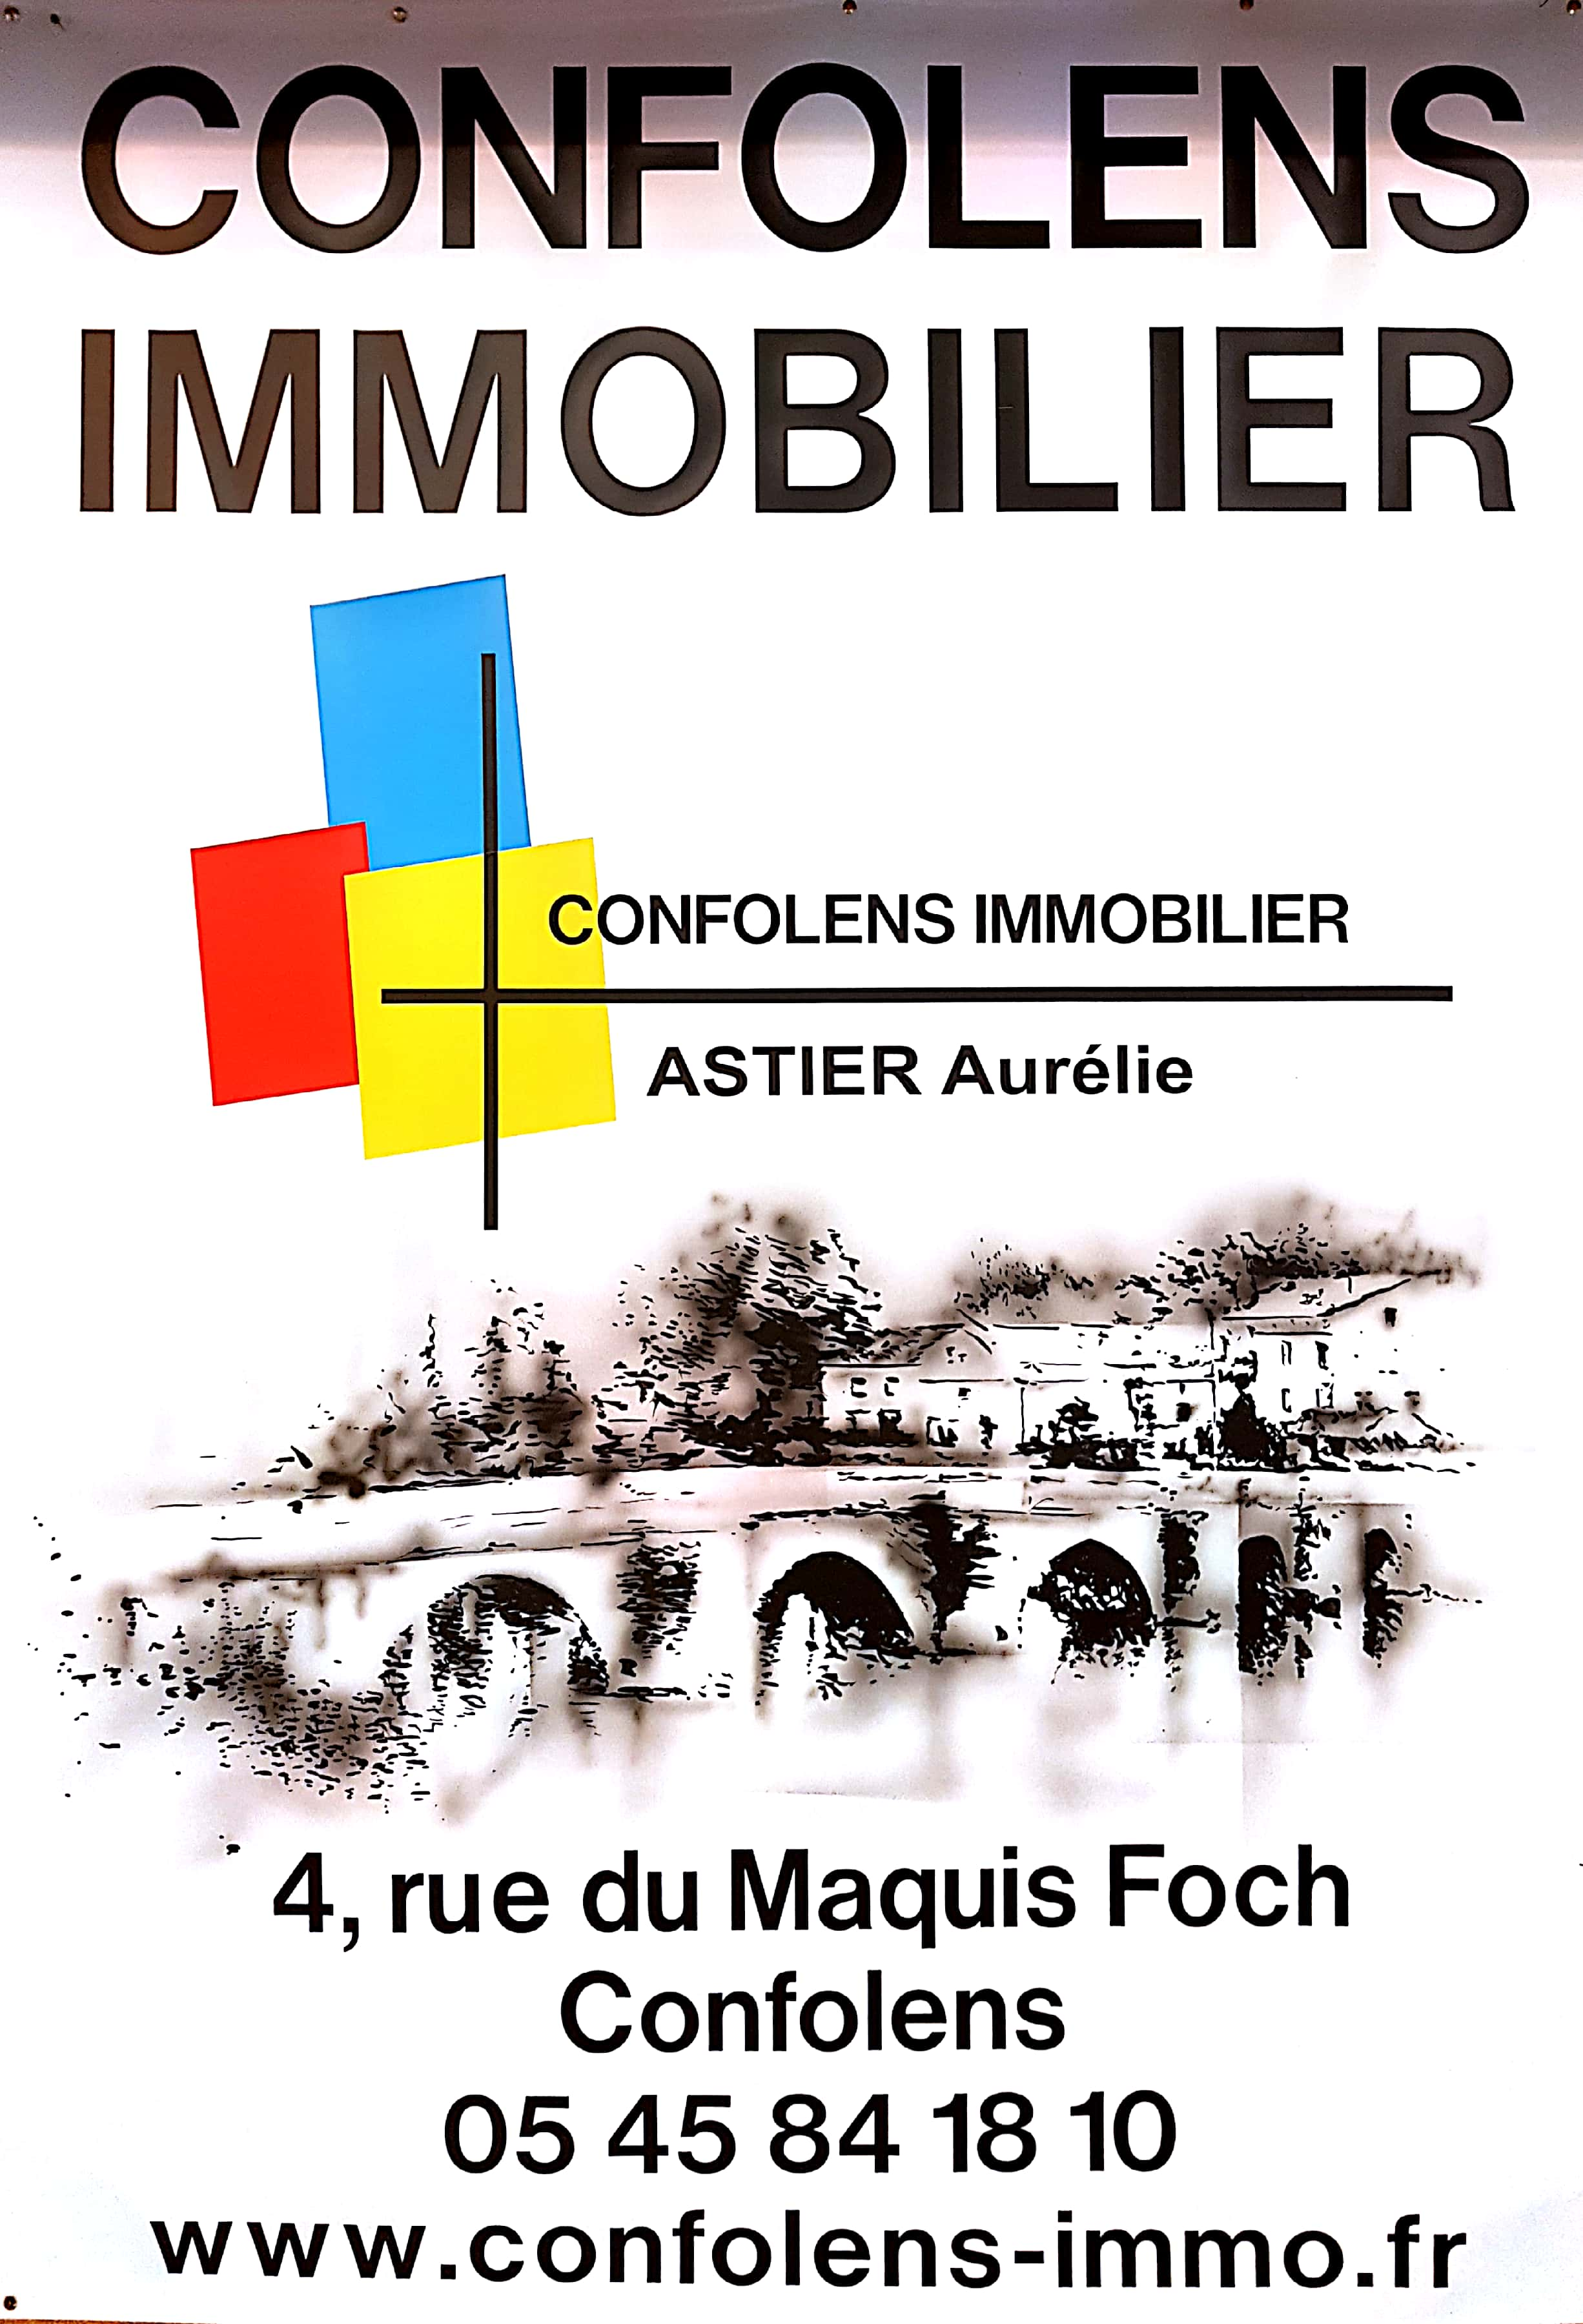 CONFOLENS IMMOBILIER